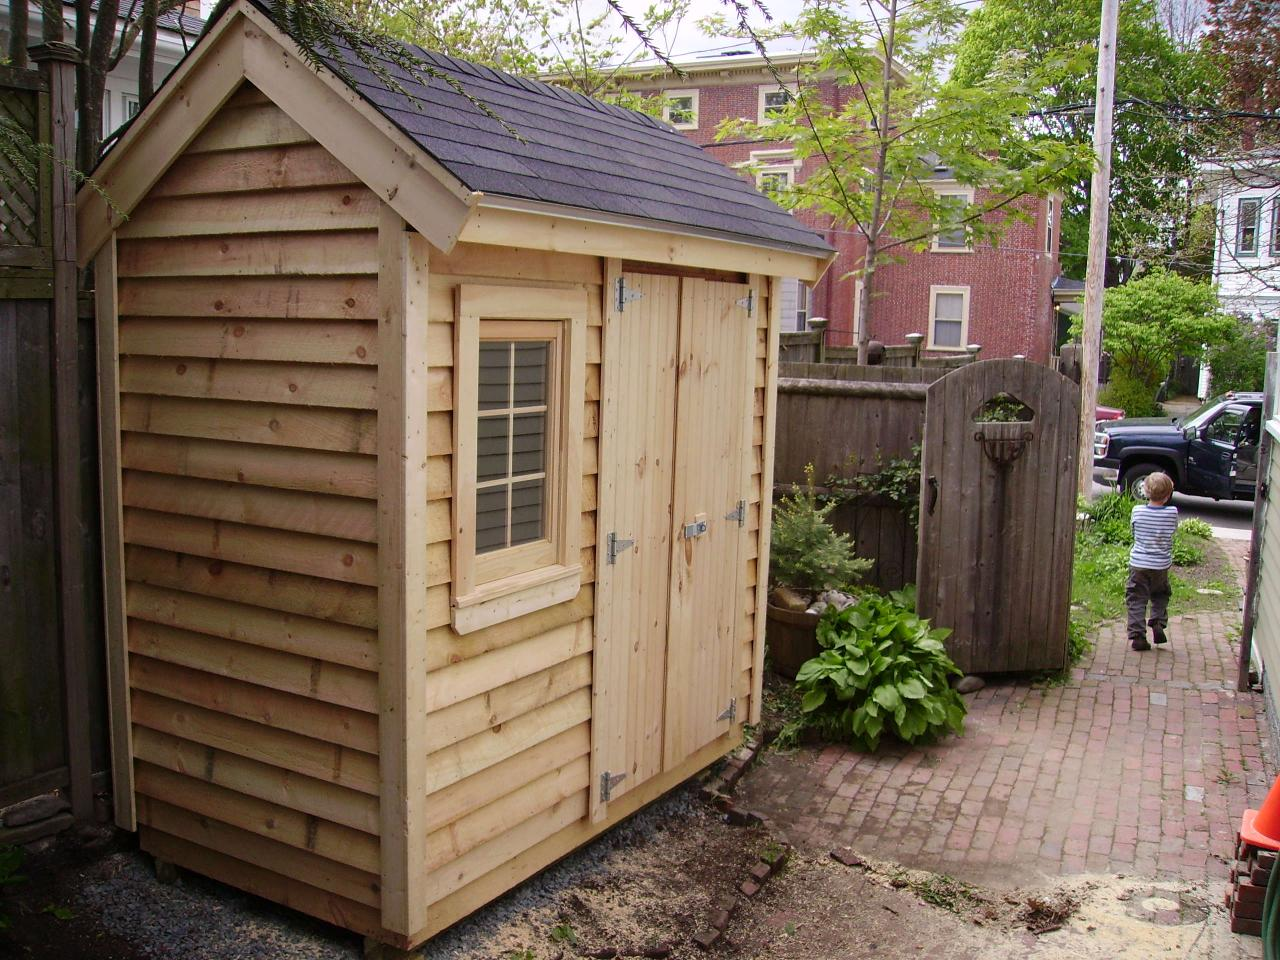 shed siding | )@% LeTs Do ShEd PrOjEcT ^^@